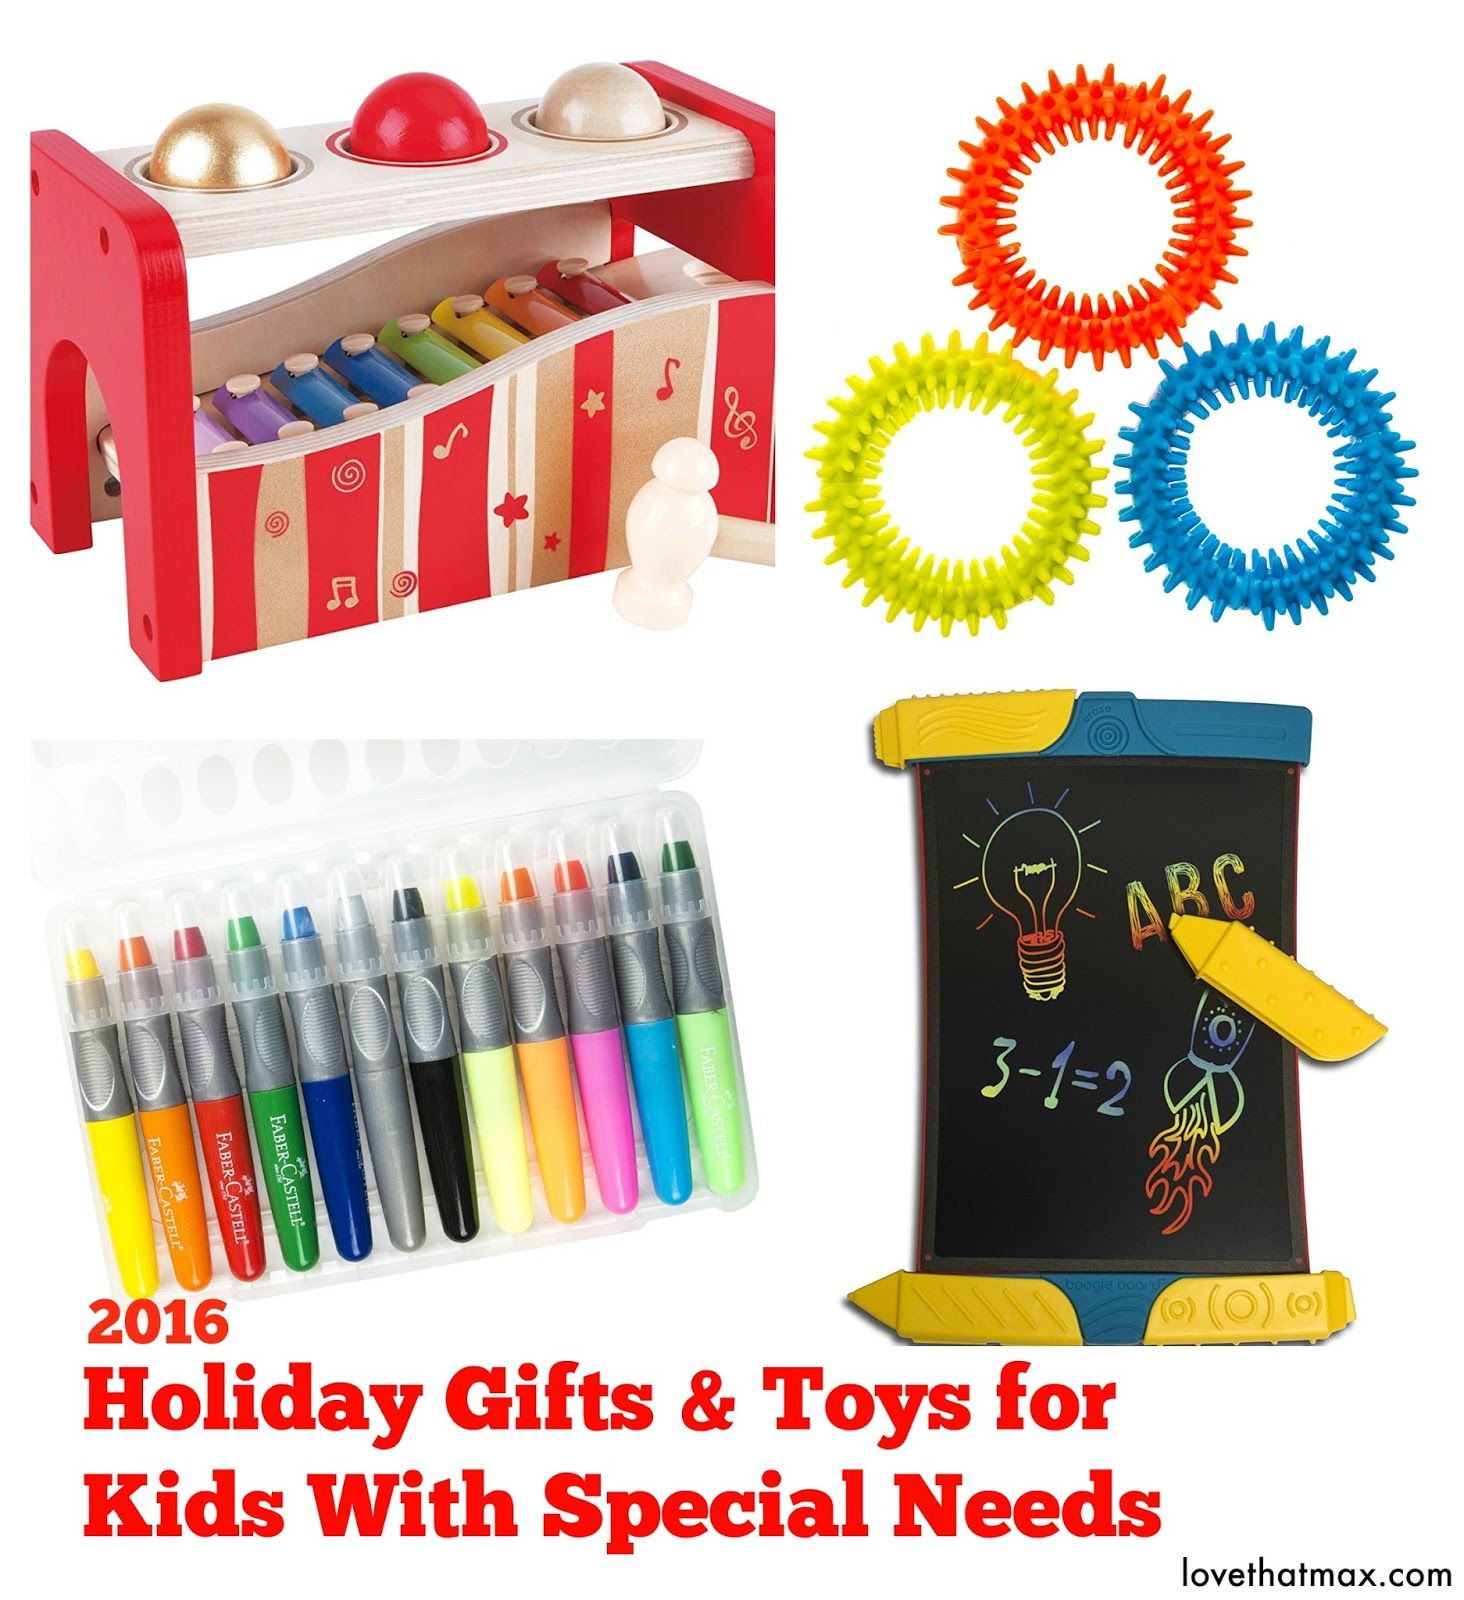 Love That Max Holiday ts and toys for kids with special needs